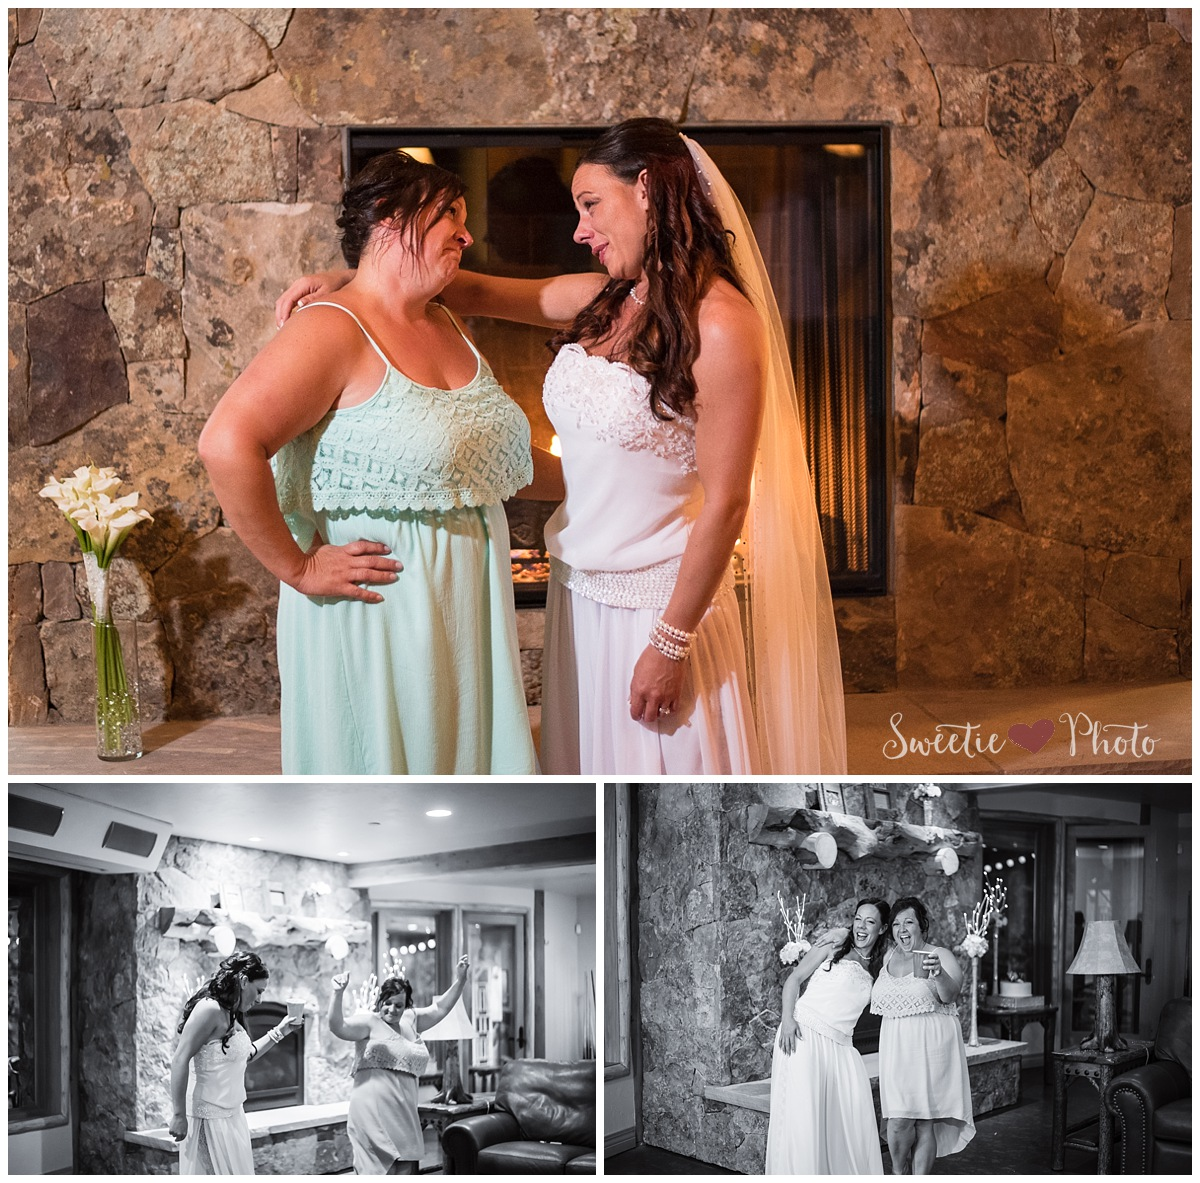 Intimate Breckenridge Wedding| Maid of Honor | Sweetie Photo, Colorado Based Wedding Photography